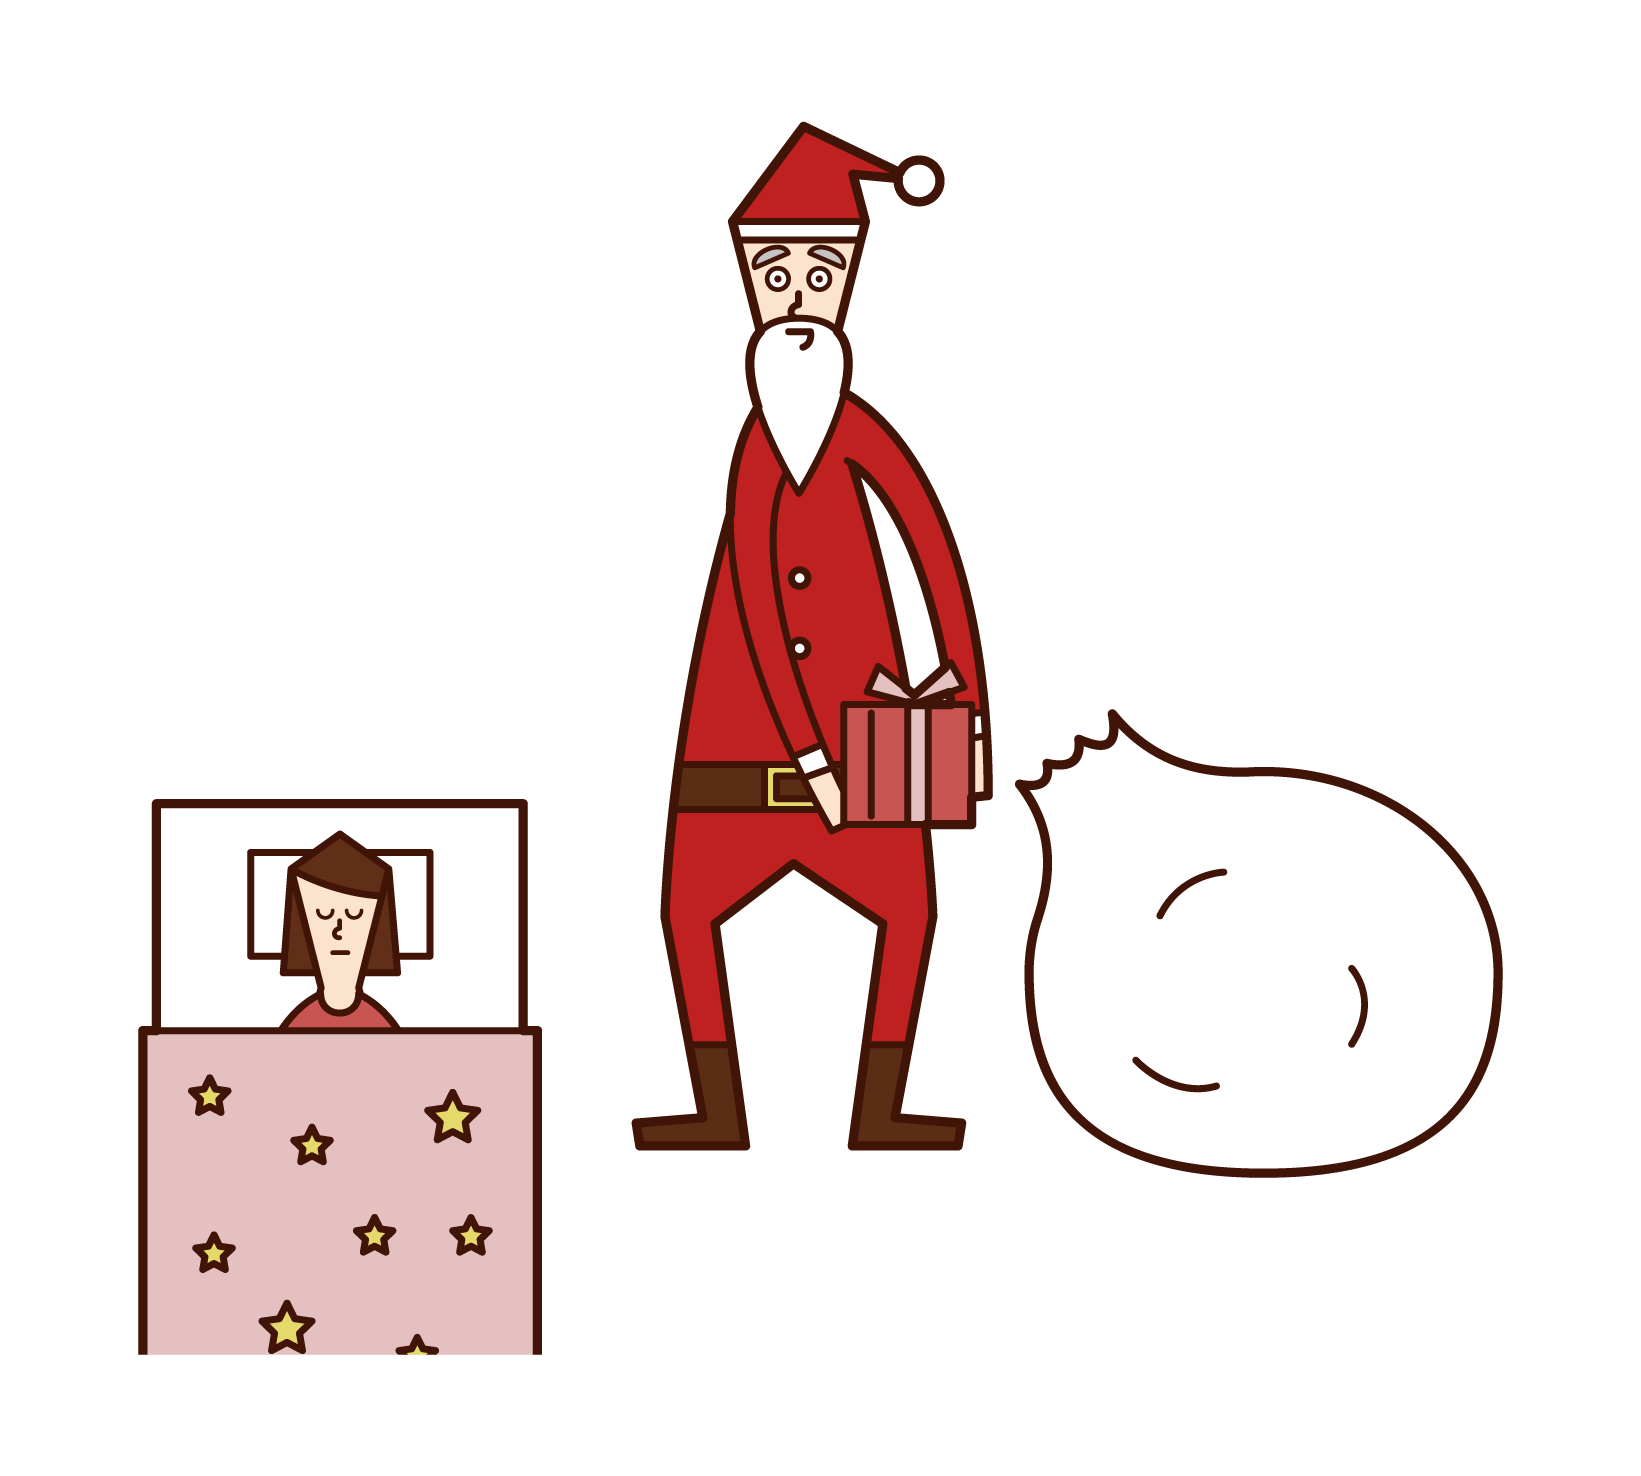 Illustration of Santa Claus putting a present at the bedside